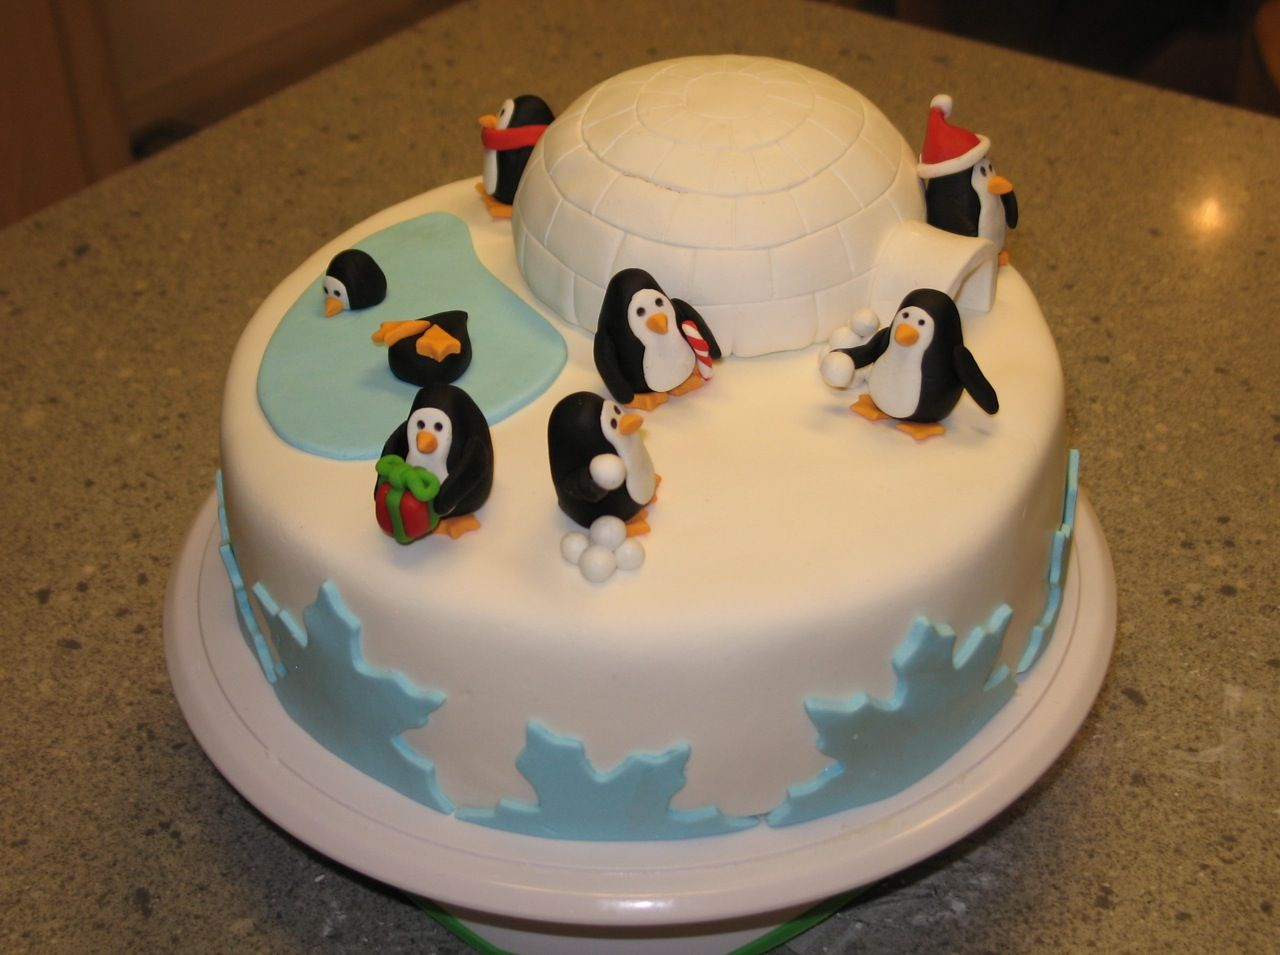 Christmas Cake Ideas Penguins : - Chocolate cake with vanilla buttercream. Covered in MFF ...